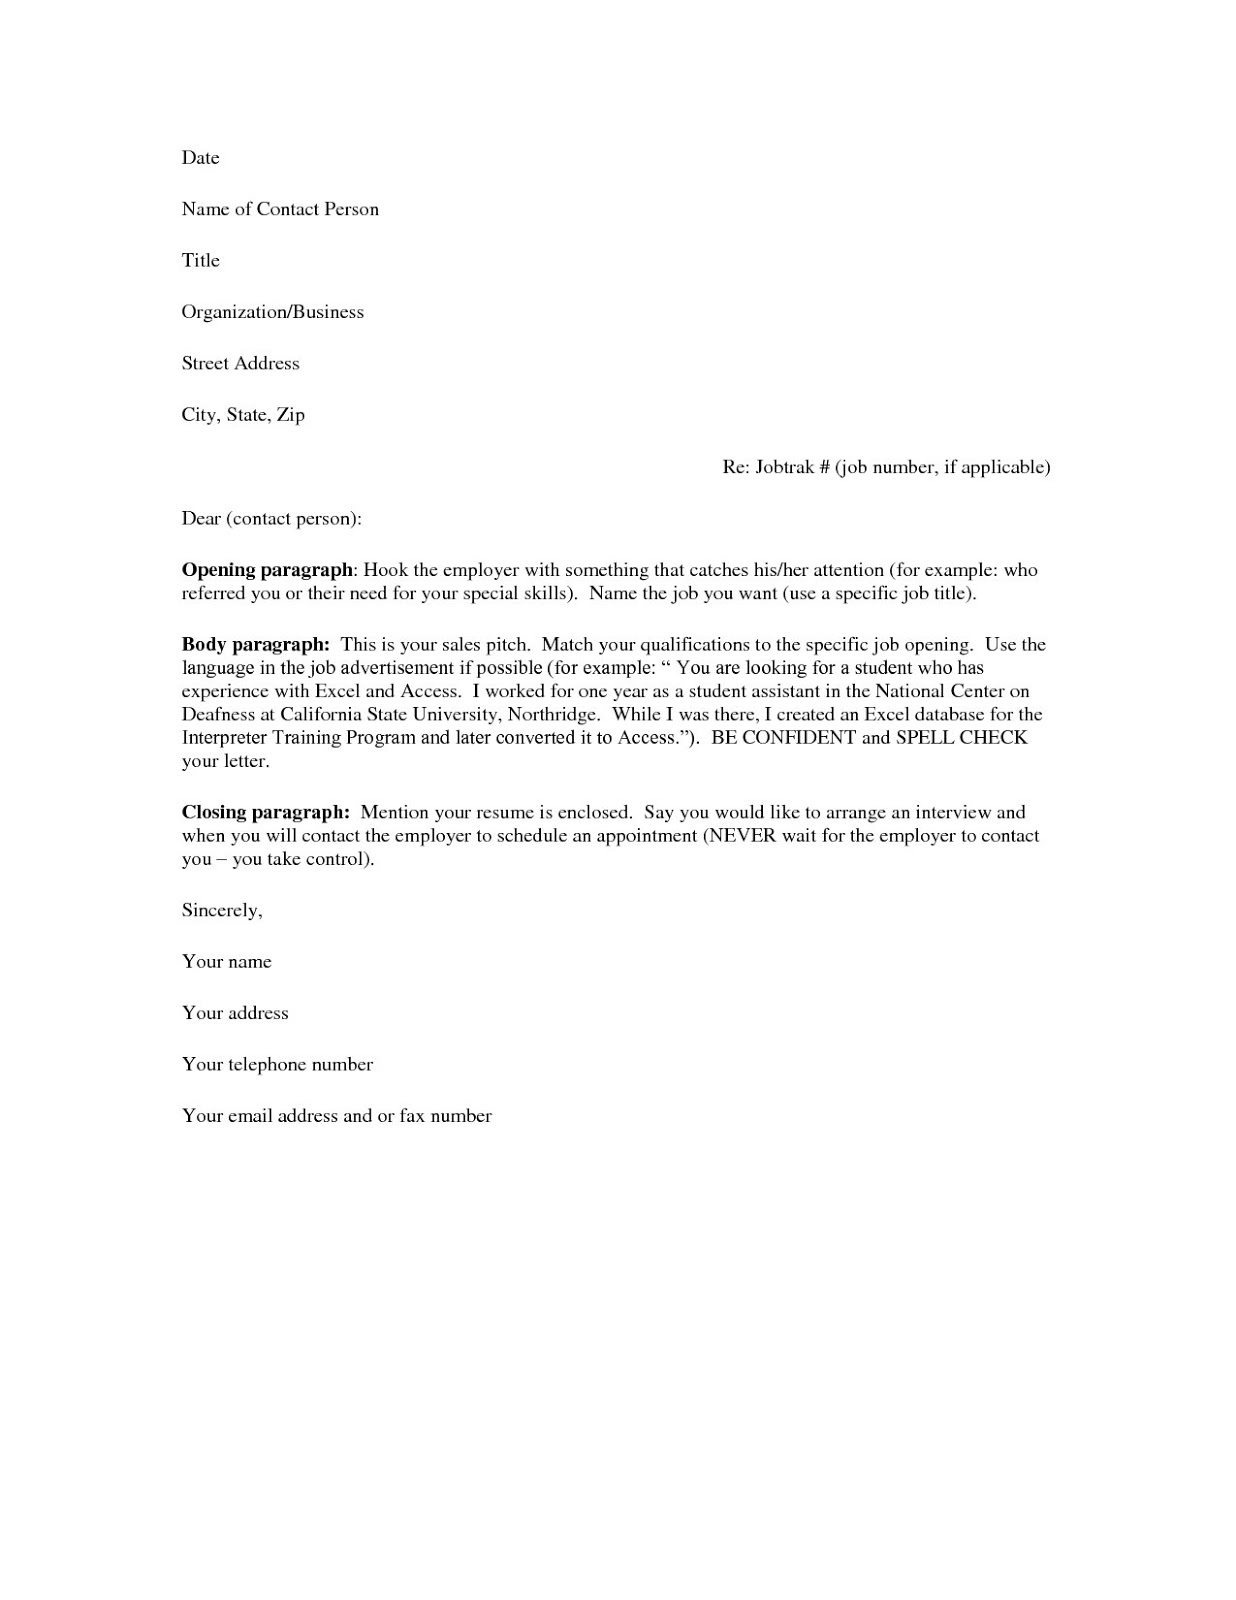 How To Write Cover Letter For Resume  example cover letter resumes       FAMU Online